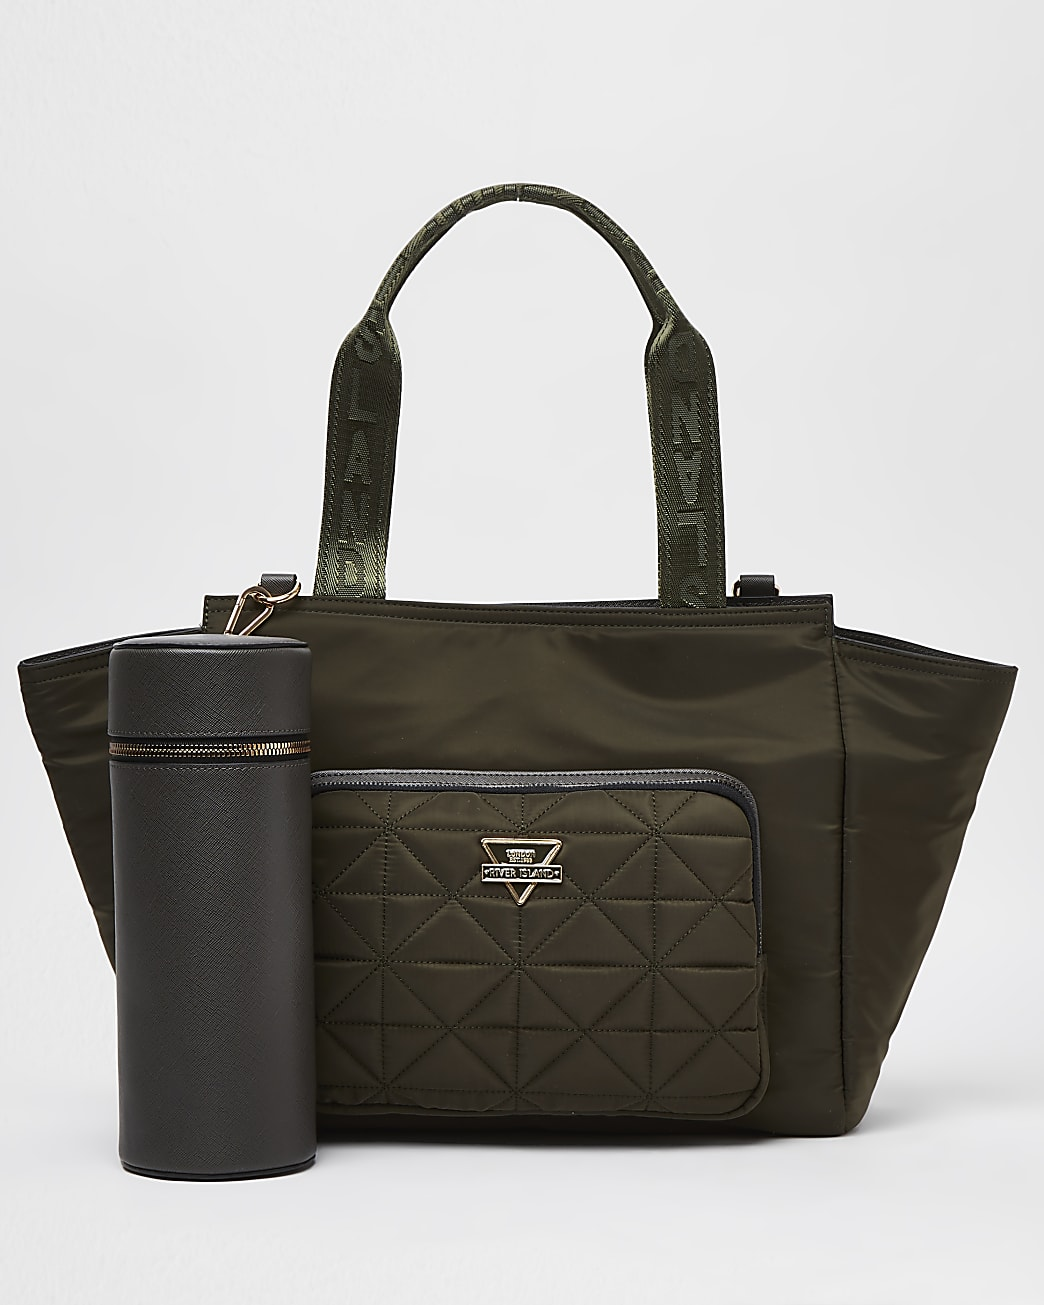 Khaki quilted tote bag and bottle carrier